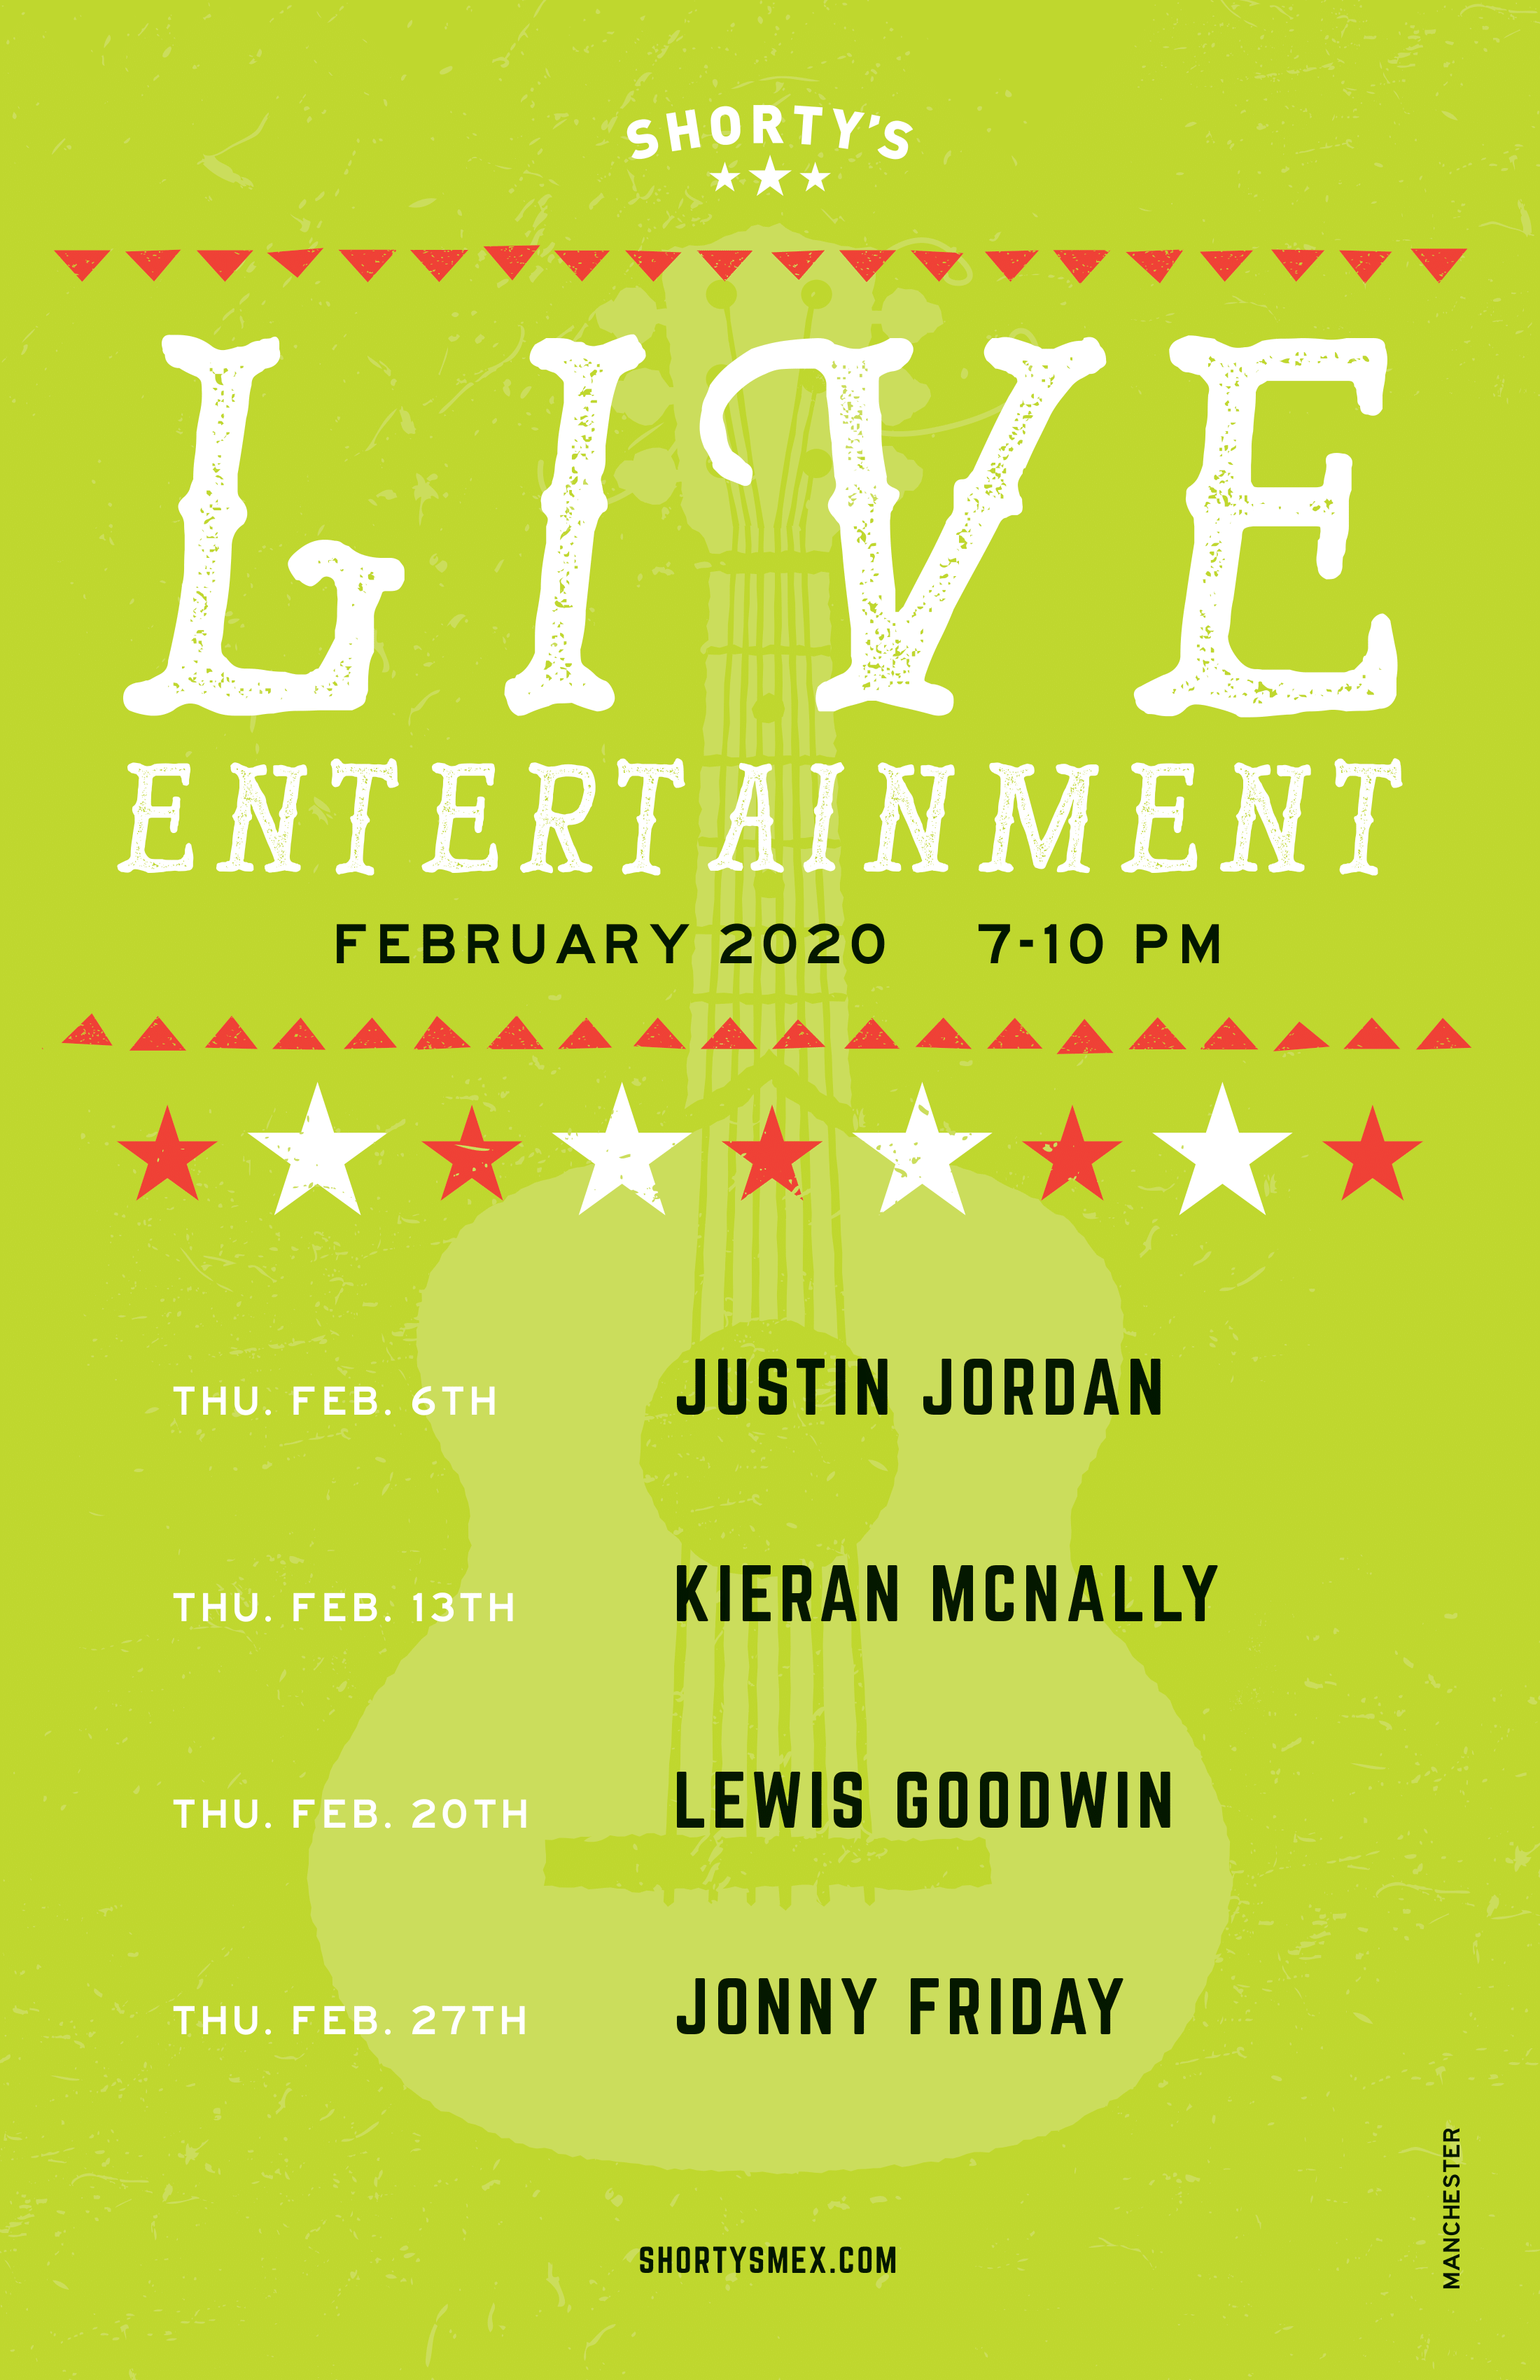 February Entertainment for Shorty's Manchester